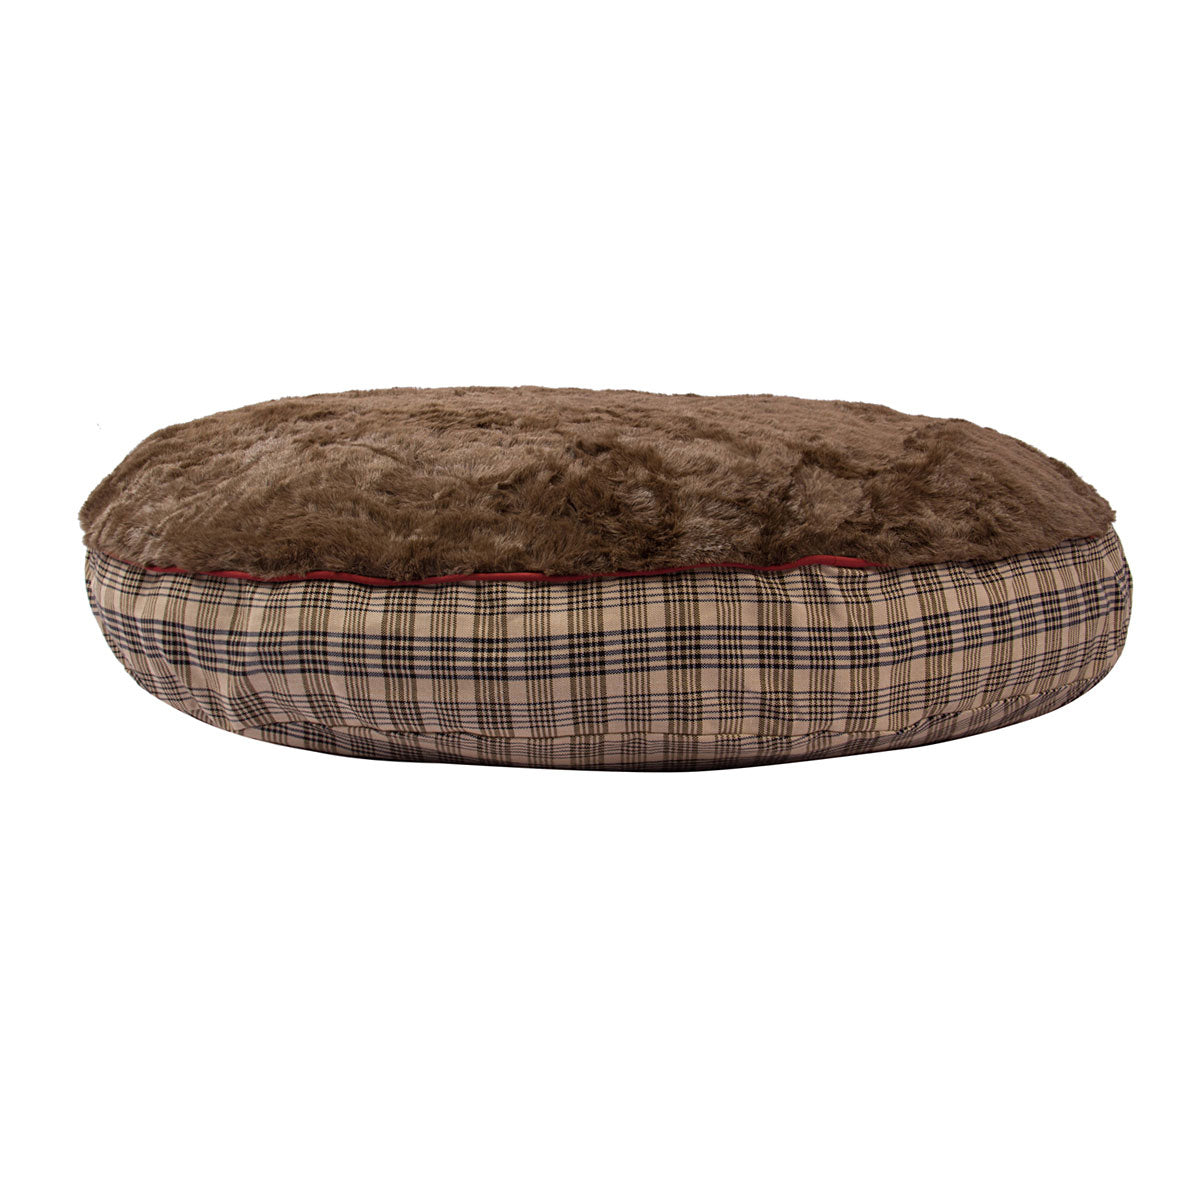 Plaid Round Dog Bed